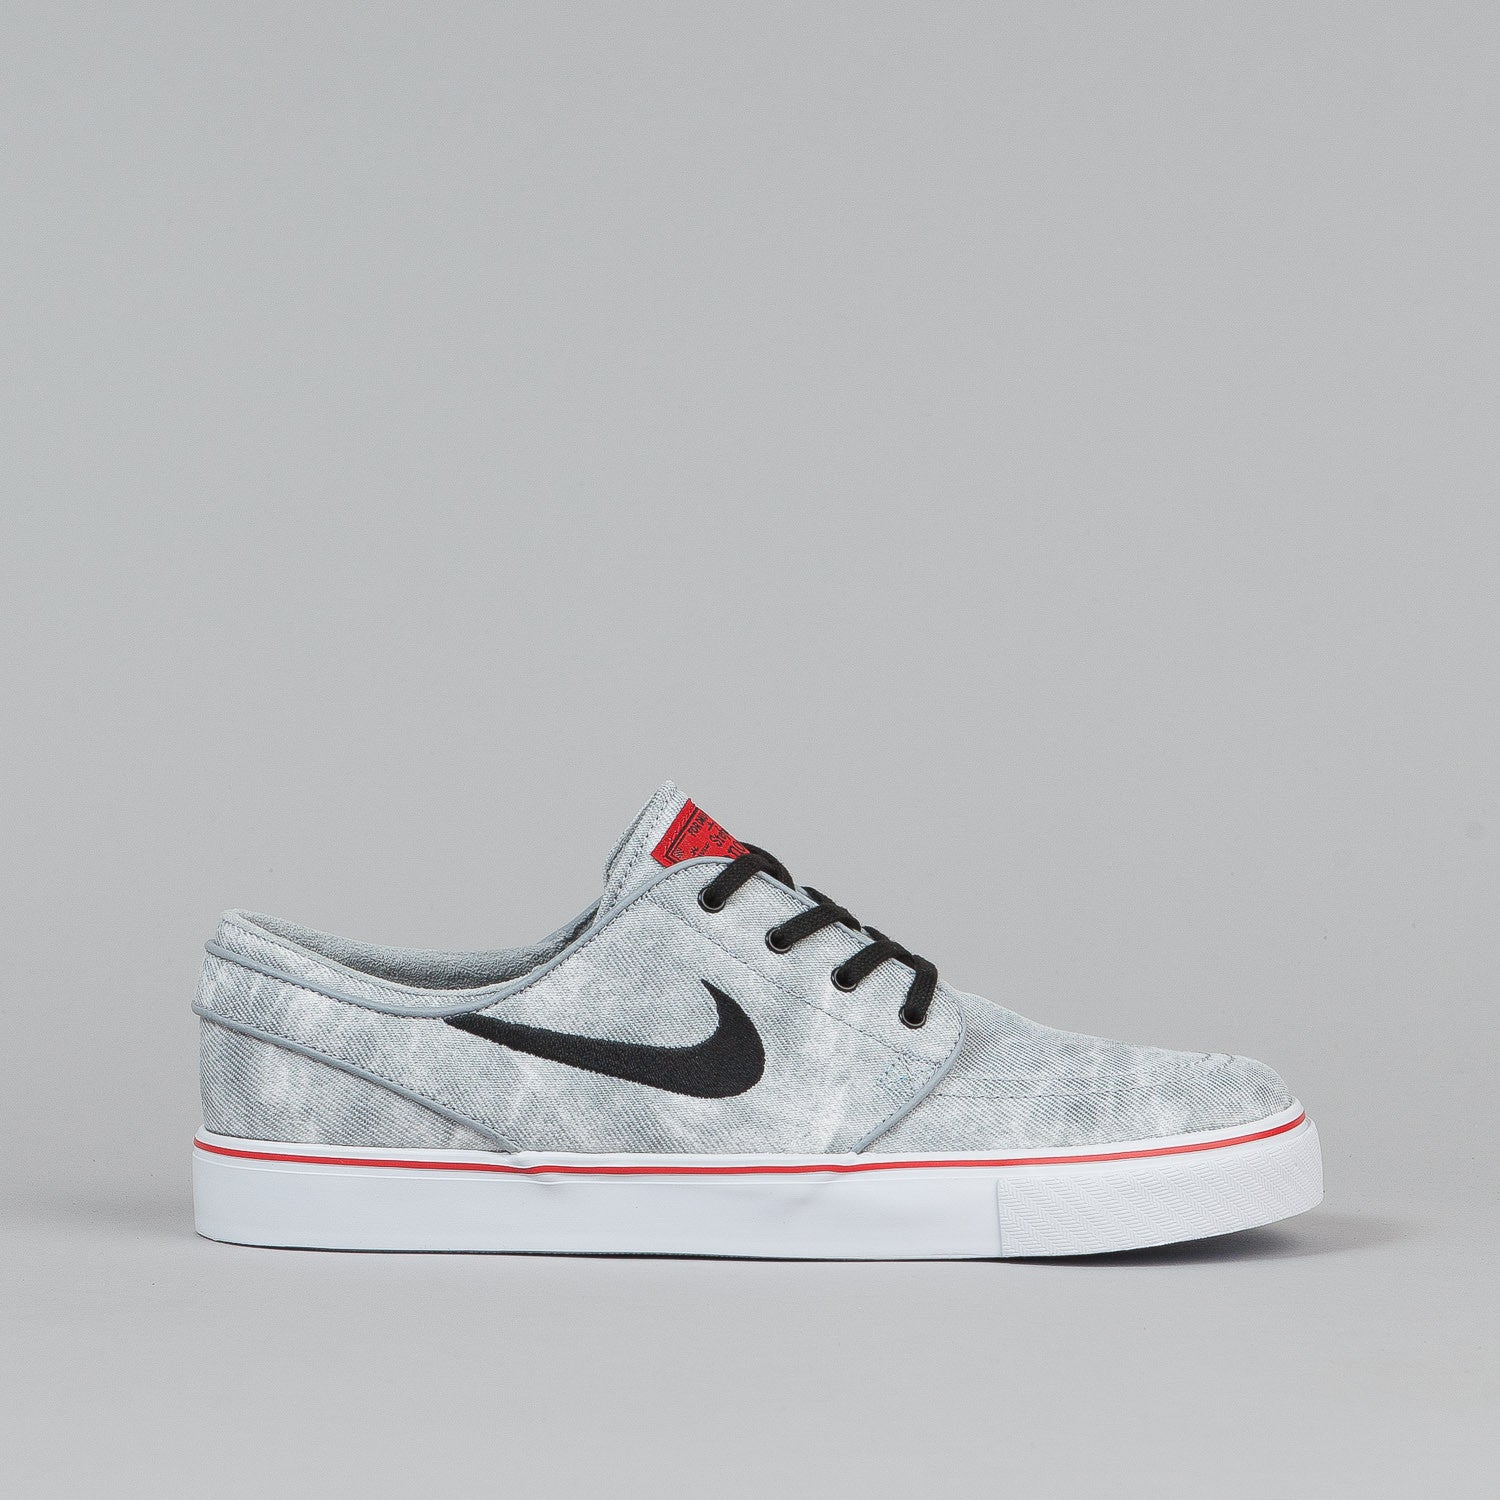 Nike SB Stefan Janoski CNVS PR QS Shoes 'Mexico City'